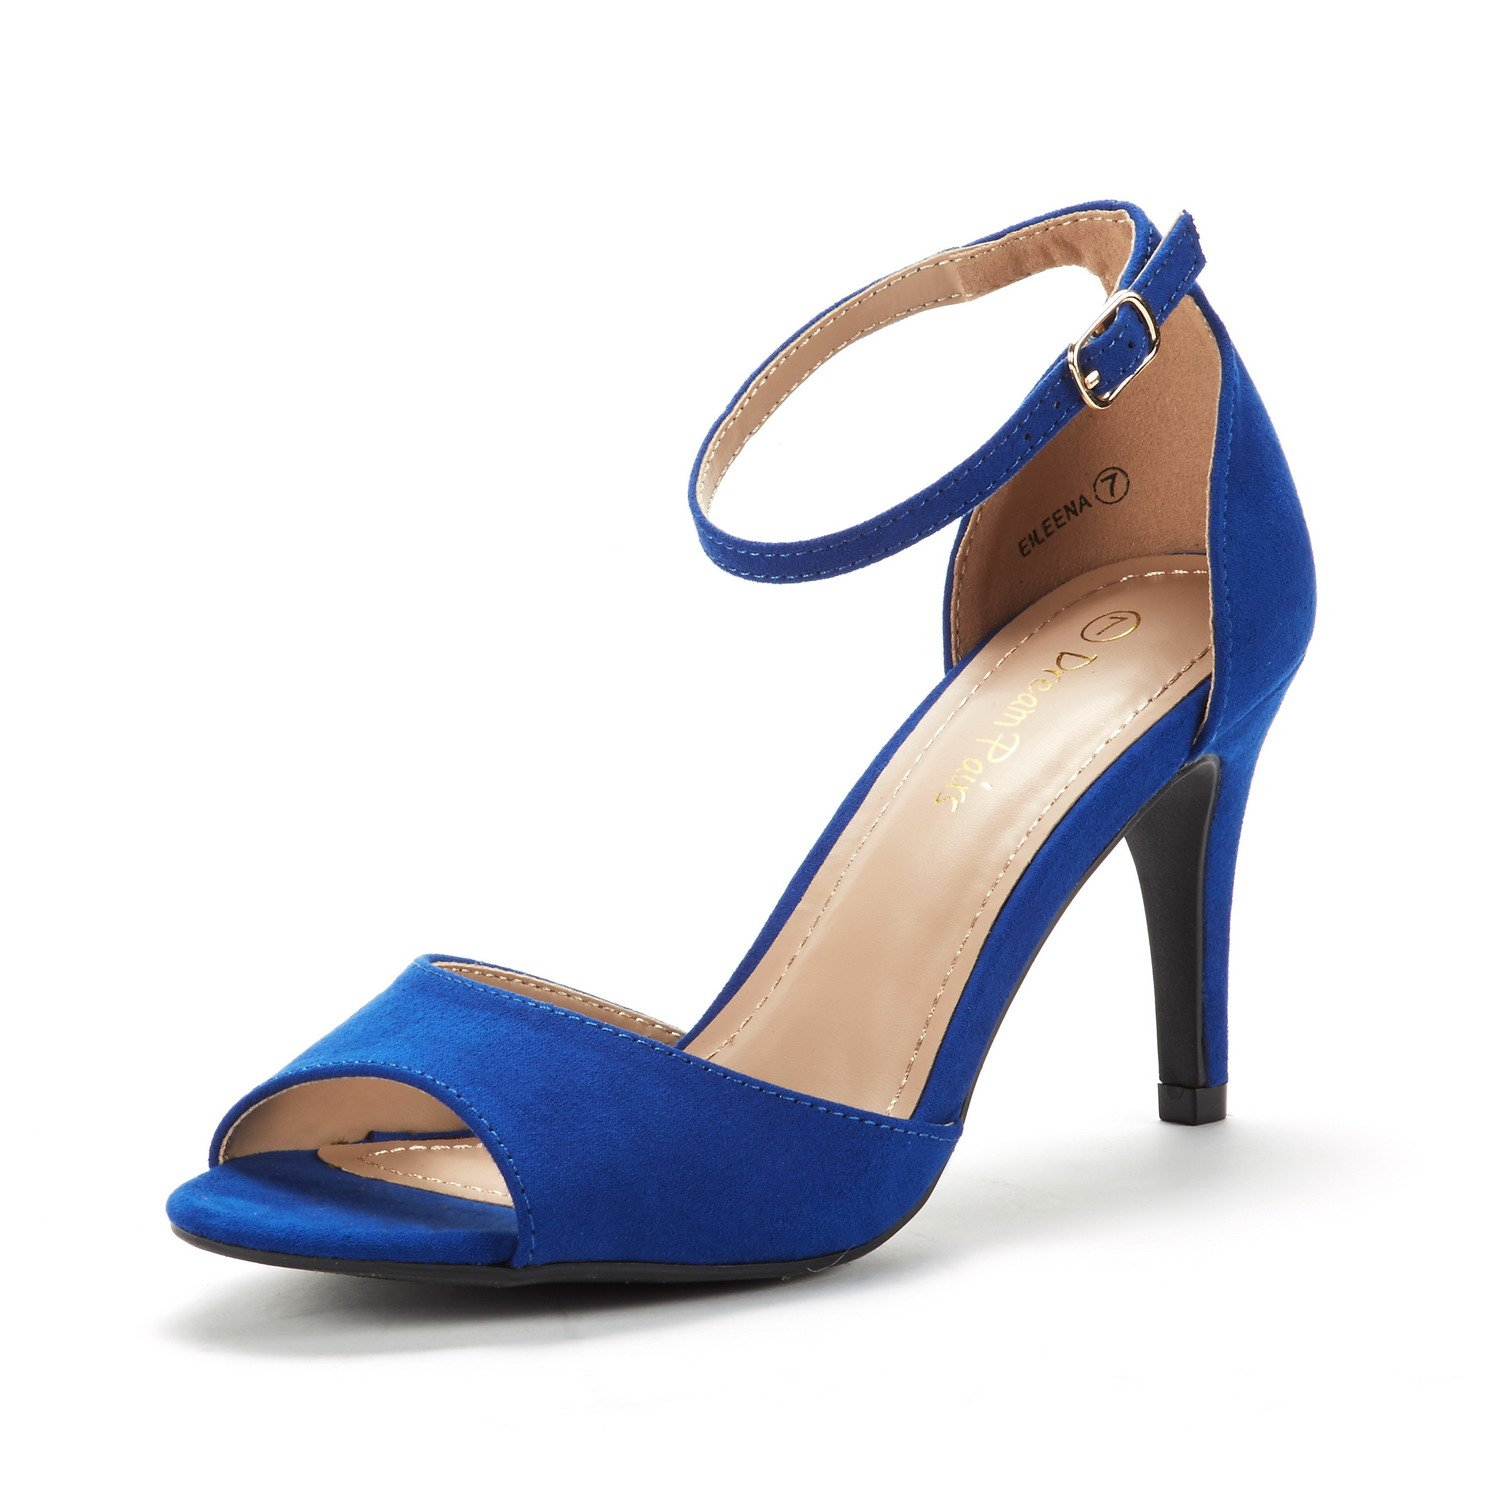 DREAM PAIRS Women's EILEENA Royal Blue Fashion Stilettos Peep Toe Pump Heeled Sandals Size 10 B(M) US